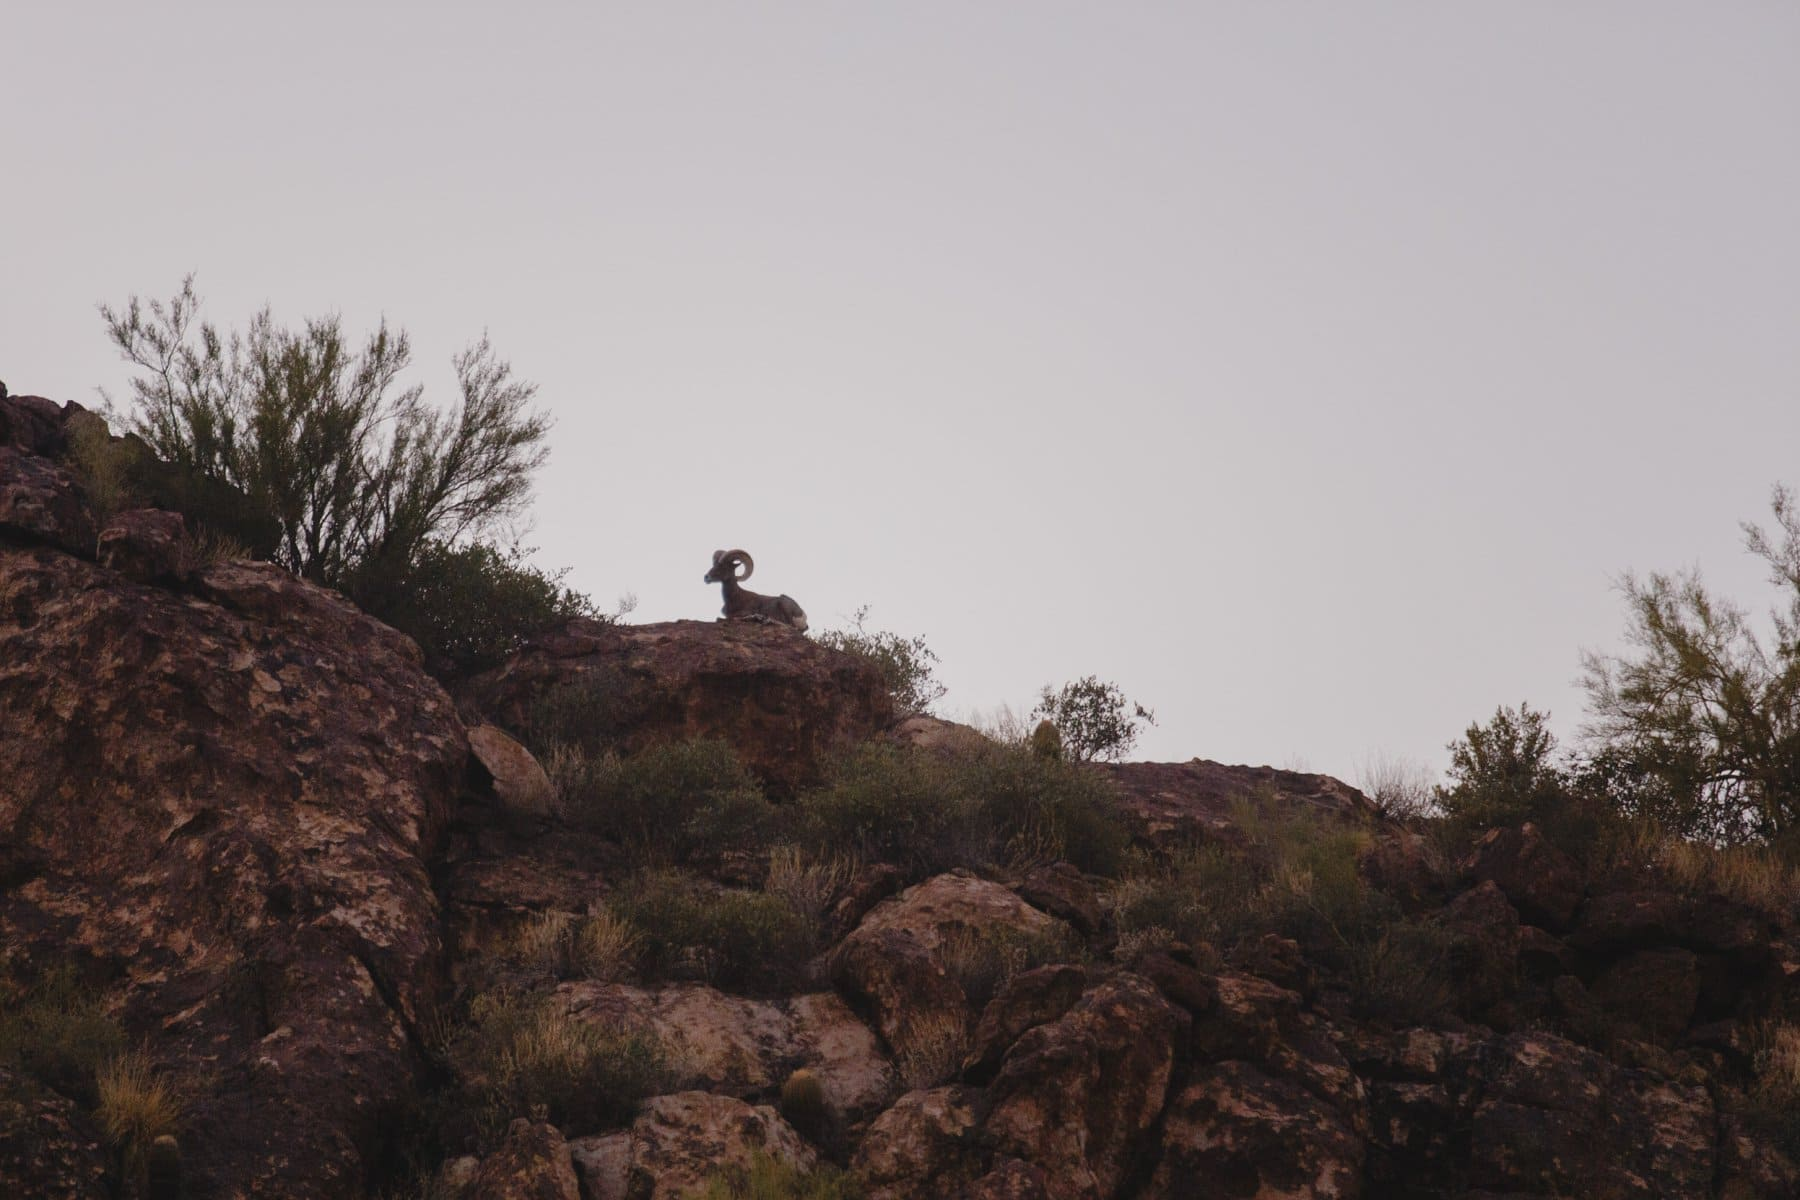 big horn sheep from Desert Belle tour boat Saguaro Lake